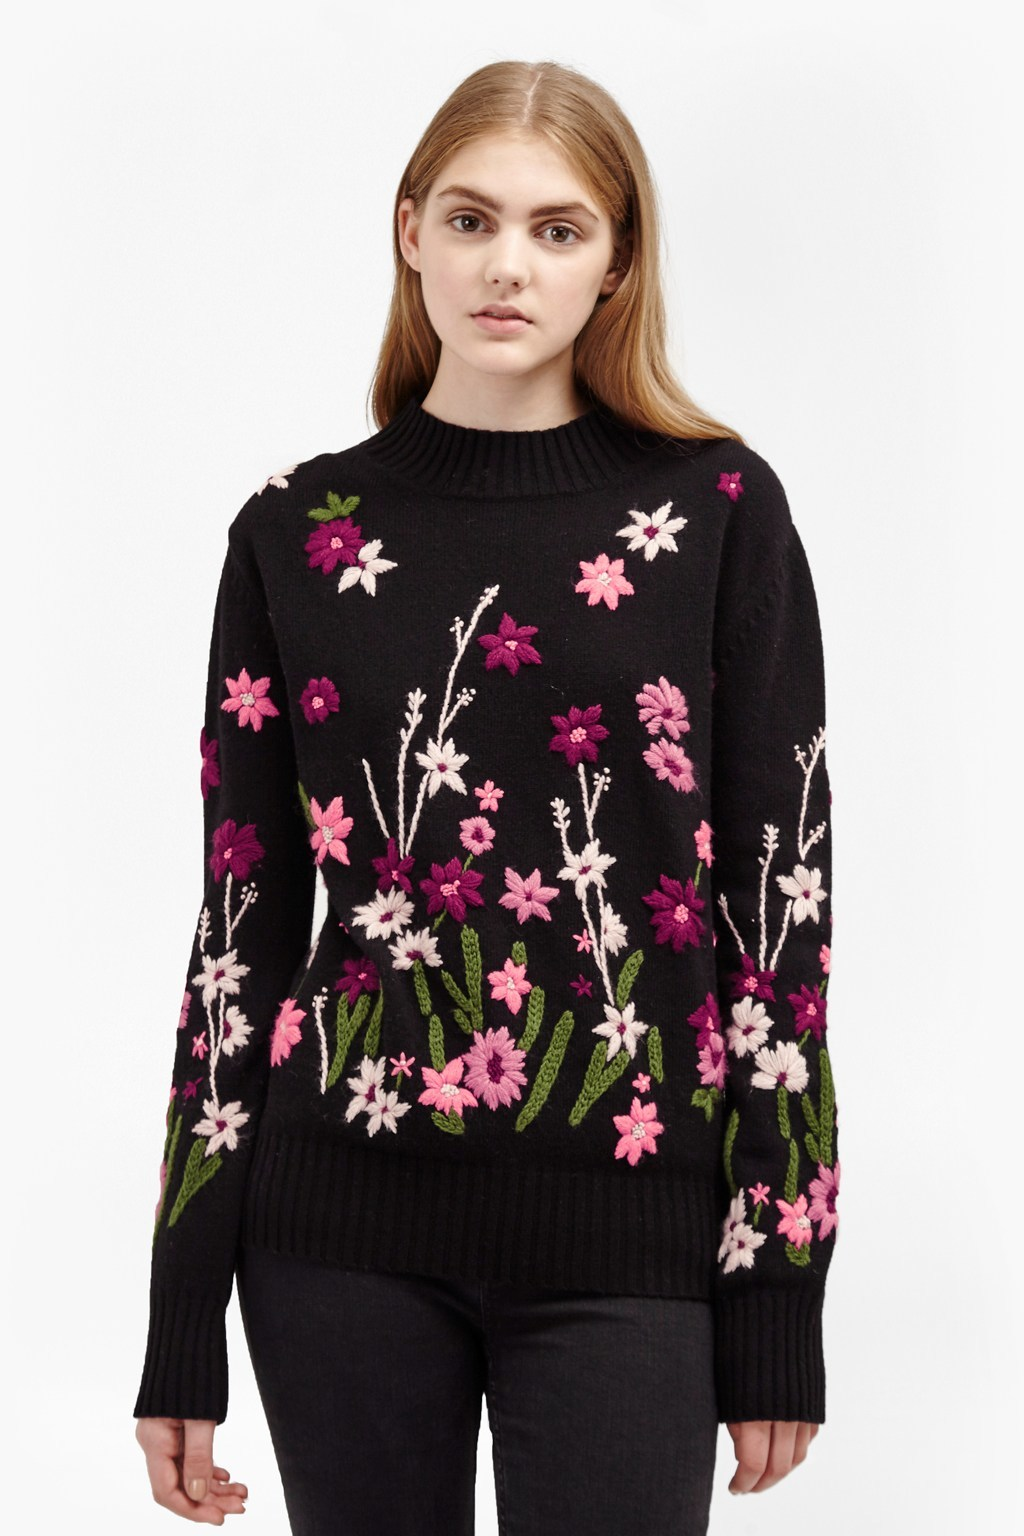 Floral Garden Embroidered Jumper Black Multi - neckline: high neck; style: standard; secondary colour: pink; predominant colour: black; occasions: casual; length: standard; fibres: wool - 100%; fit: standard fit; sleeve length: long sleeve; sleeve style: standard; texture group: knits/crochet; pattern type: fabric; pattern: patterned/print; multicoloured: multicoloured; season: a/w 2016